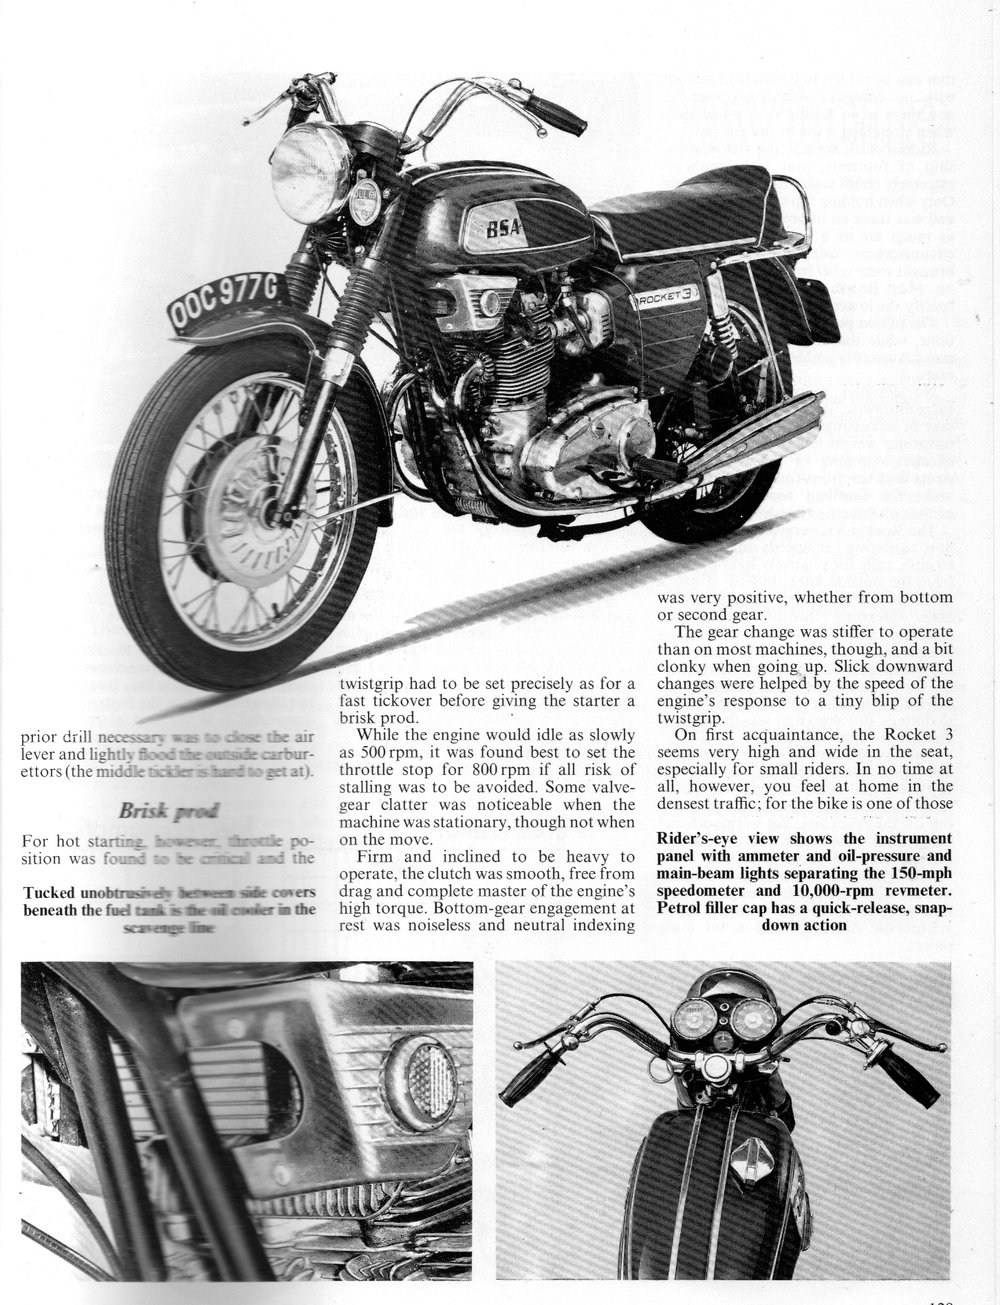 1968 BSA Rocket 3 740 road test 2.jpg